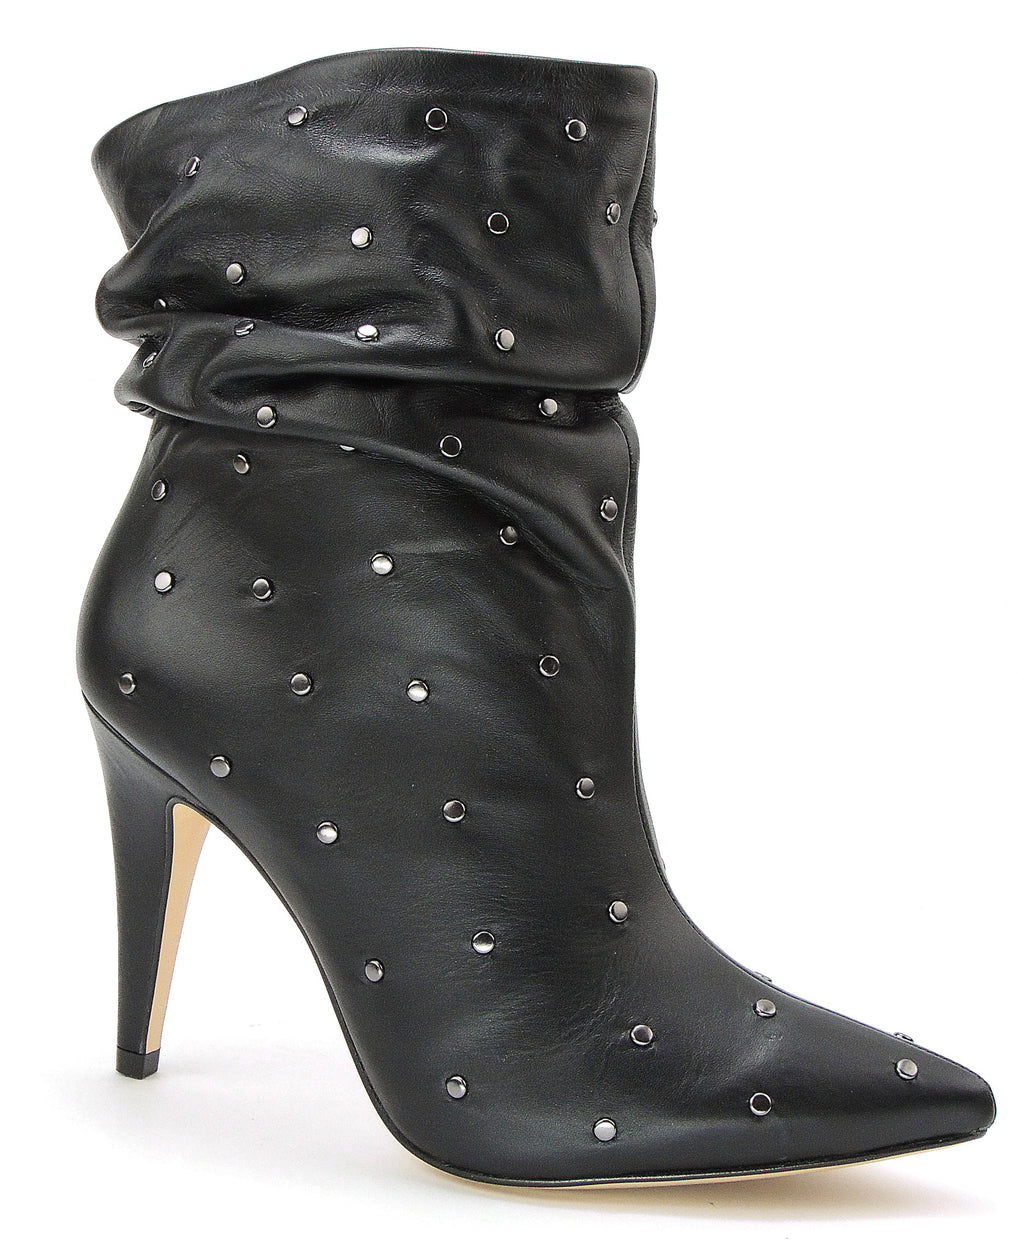 Black Slouchy Soft Leather Boot With Studs - ONE55 by Werner